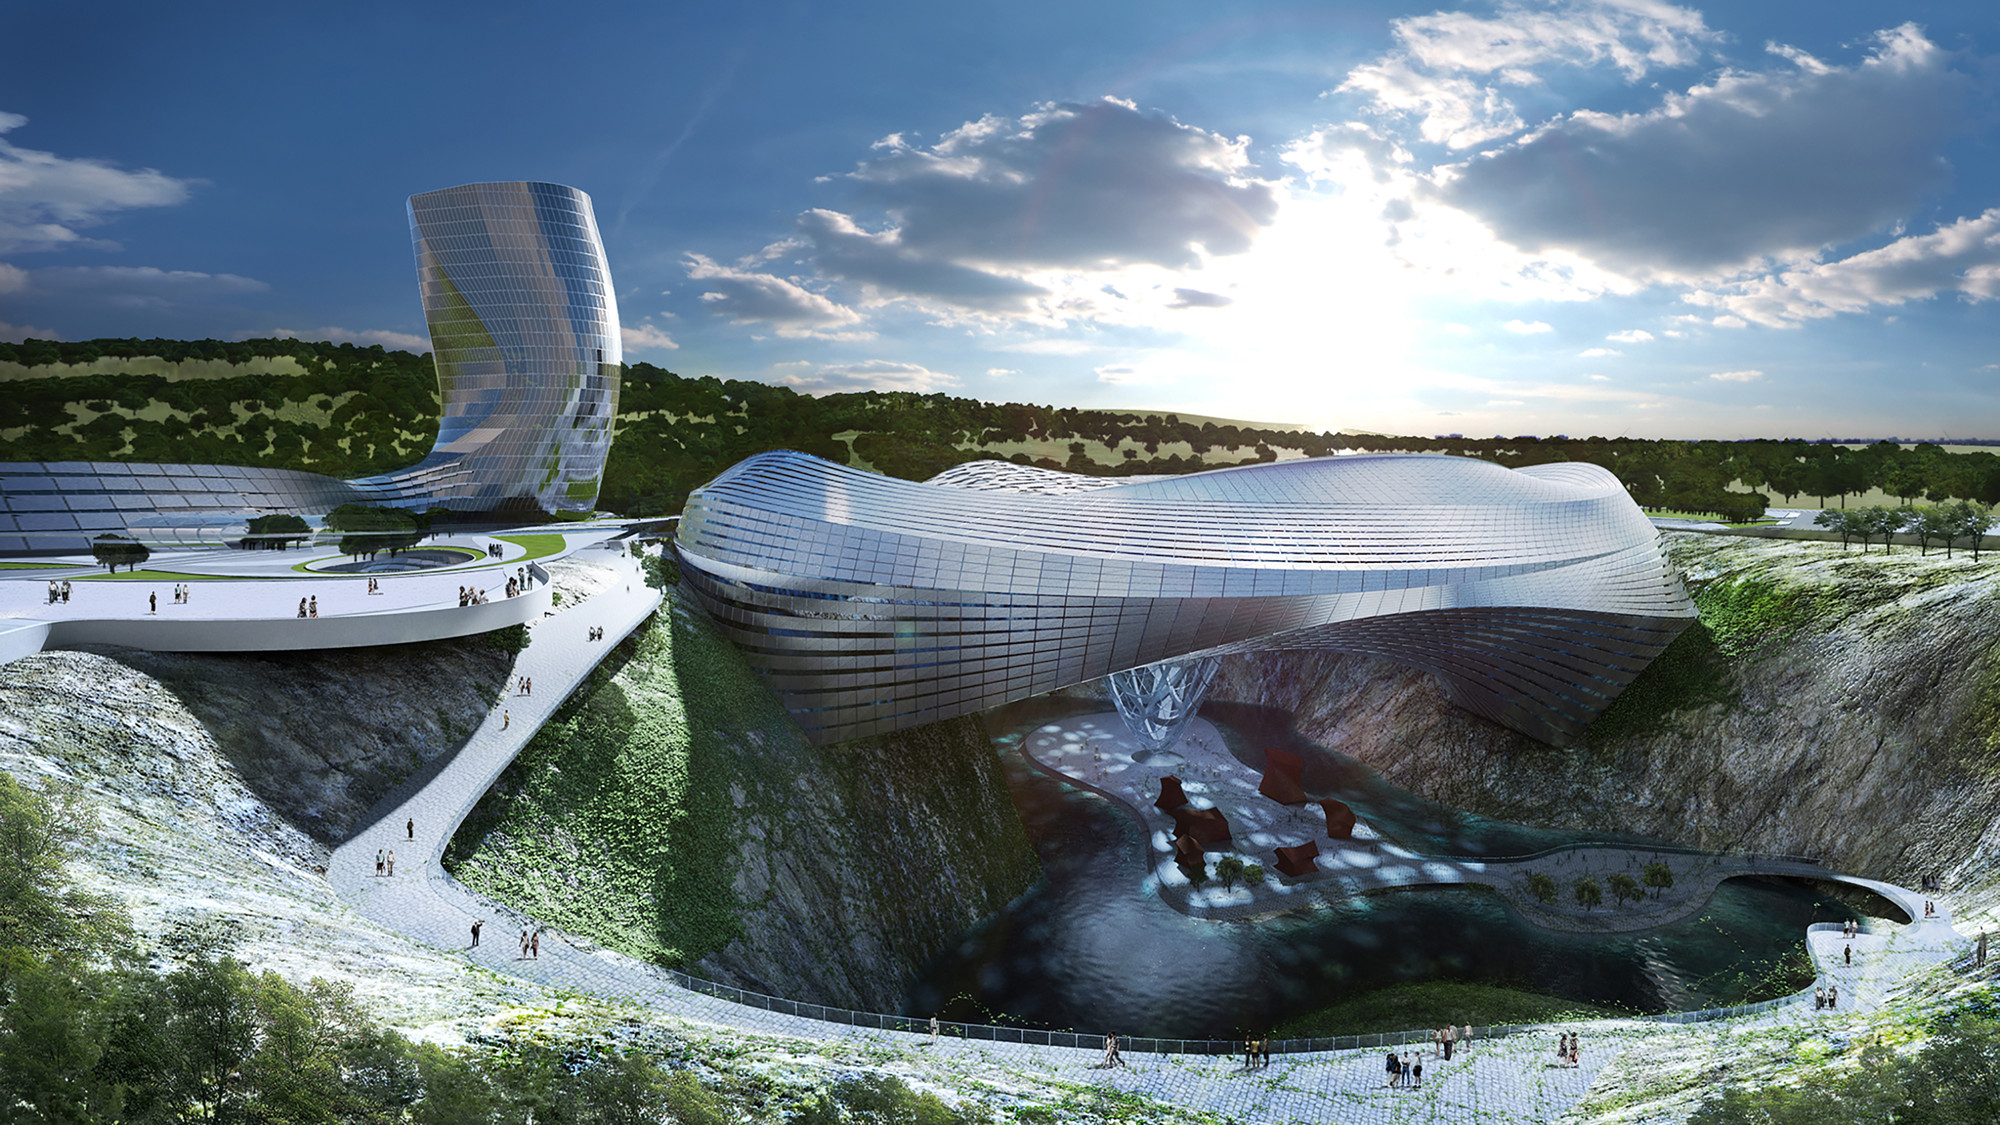 Dawang Mountain Resort Changsha / Coop Himmelb(l)au, Courtesy of Coop Himmelb(l)au